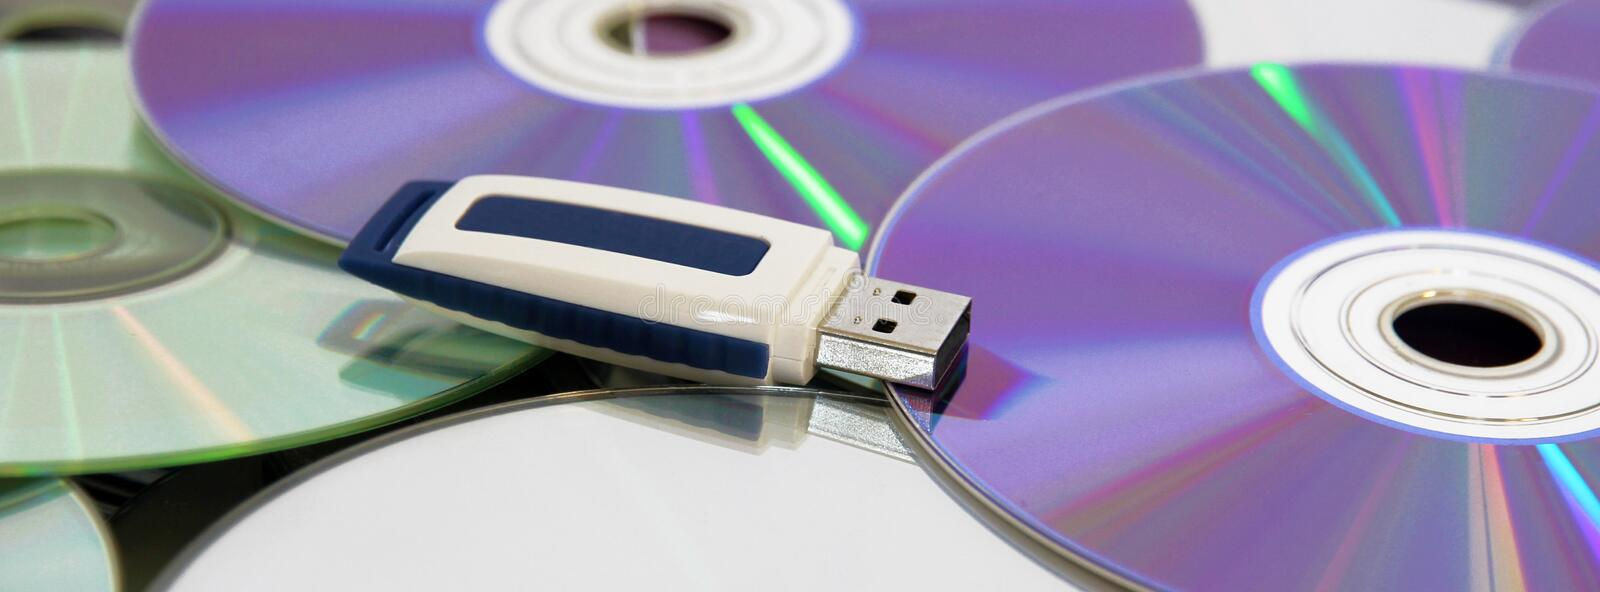 Download Storage USB Pen Drive stock photo. Image of container - 20504560